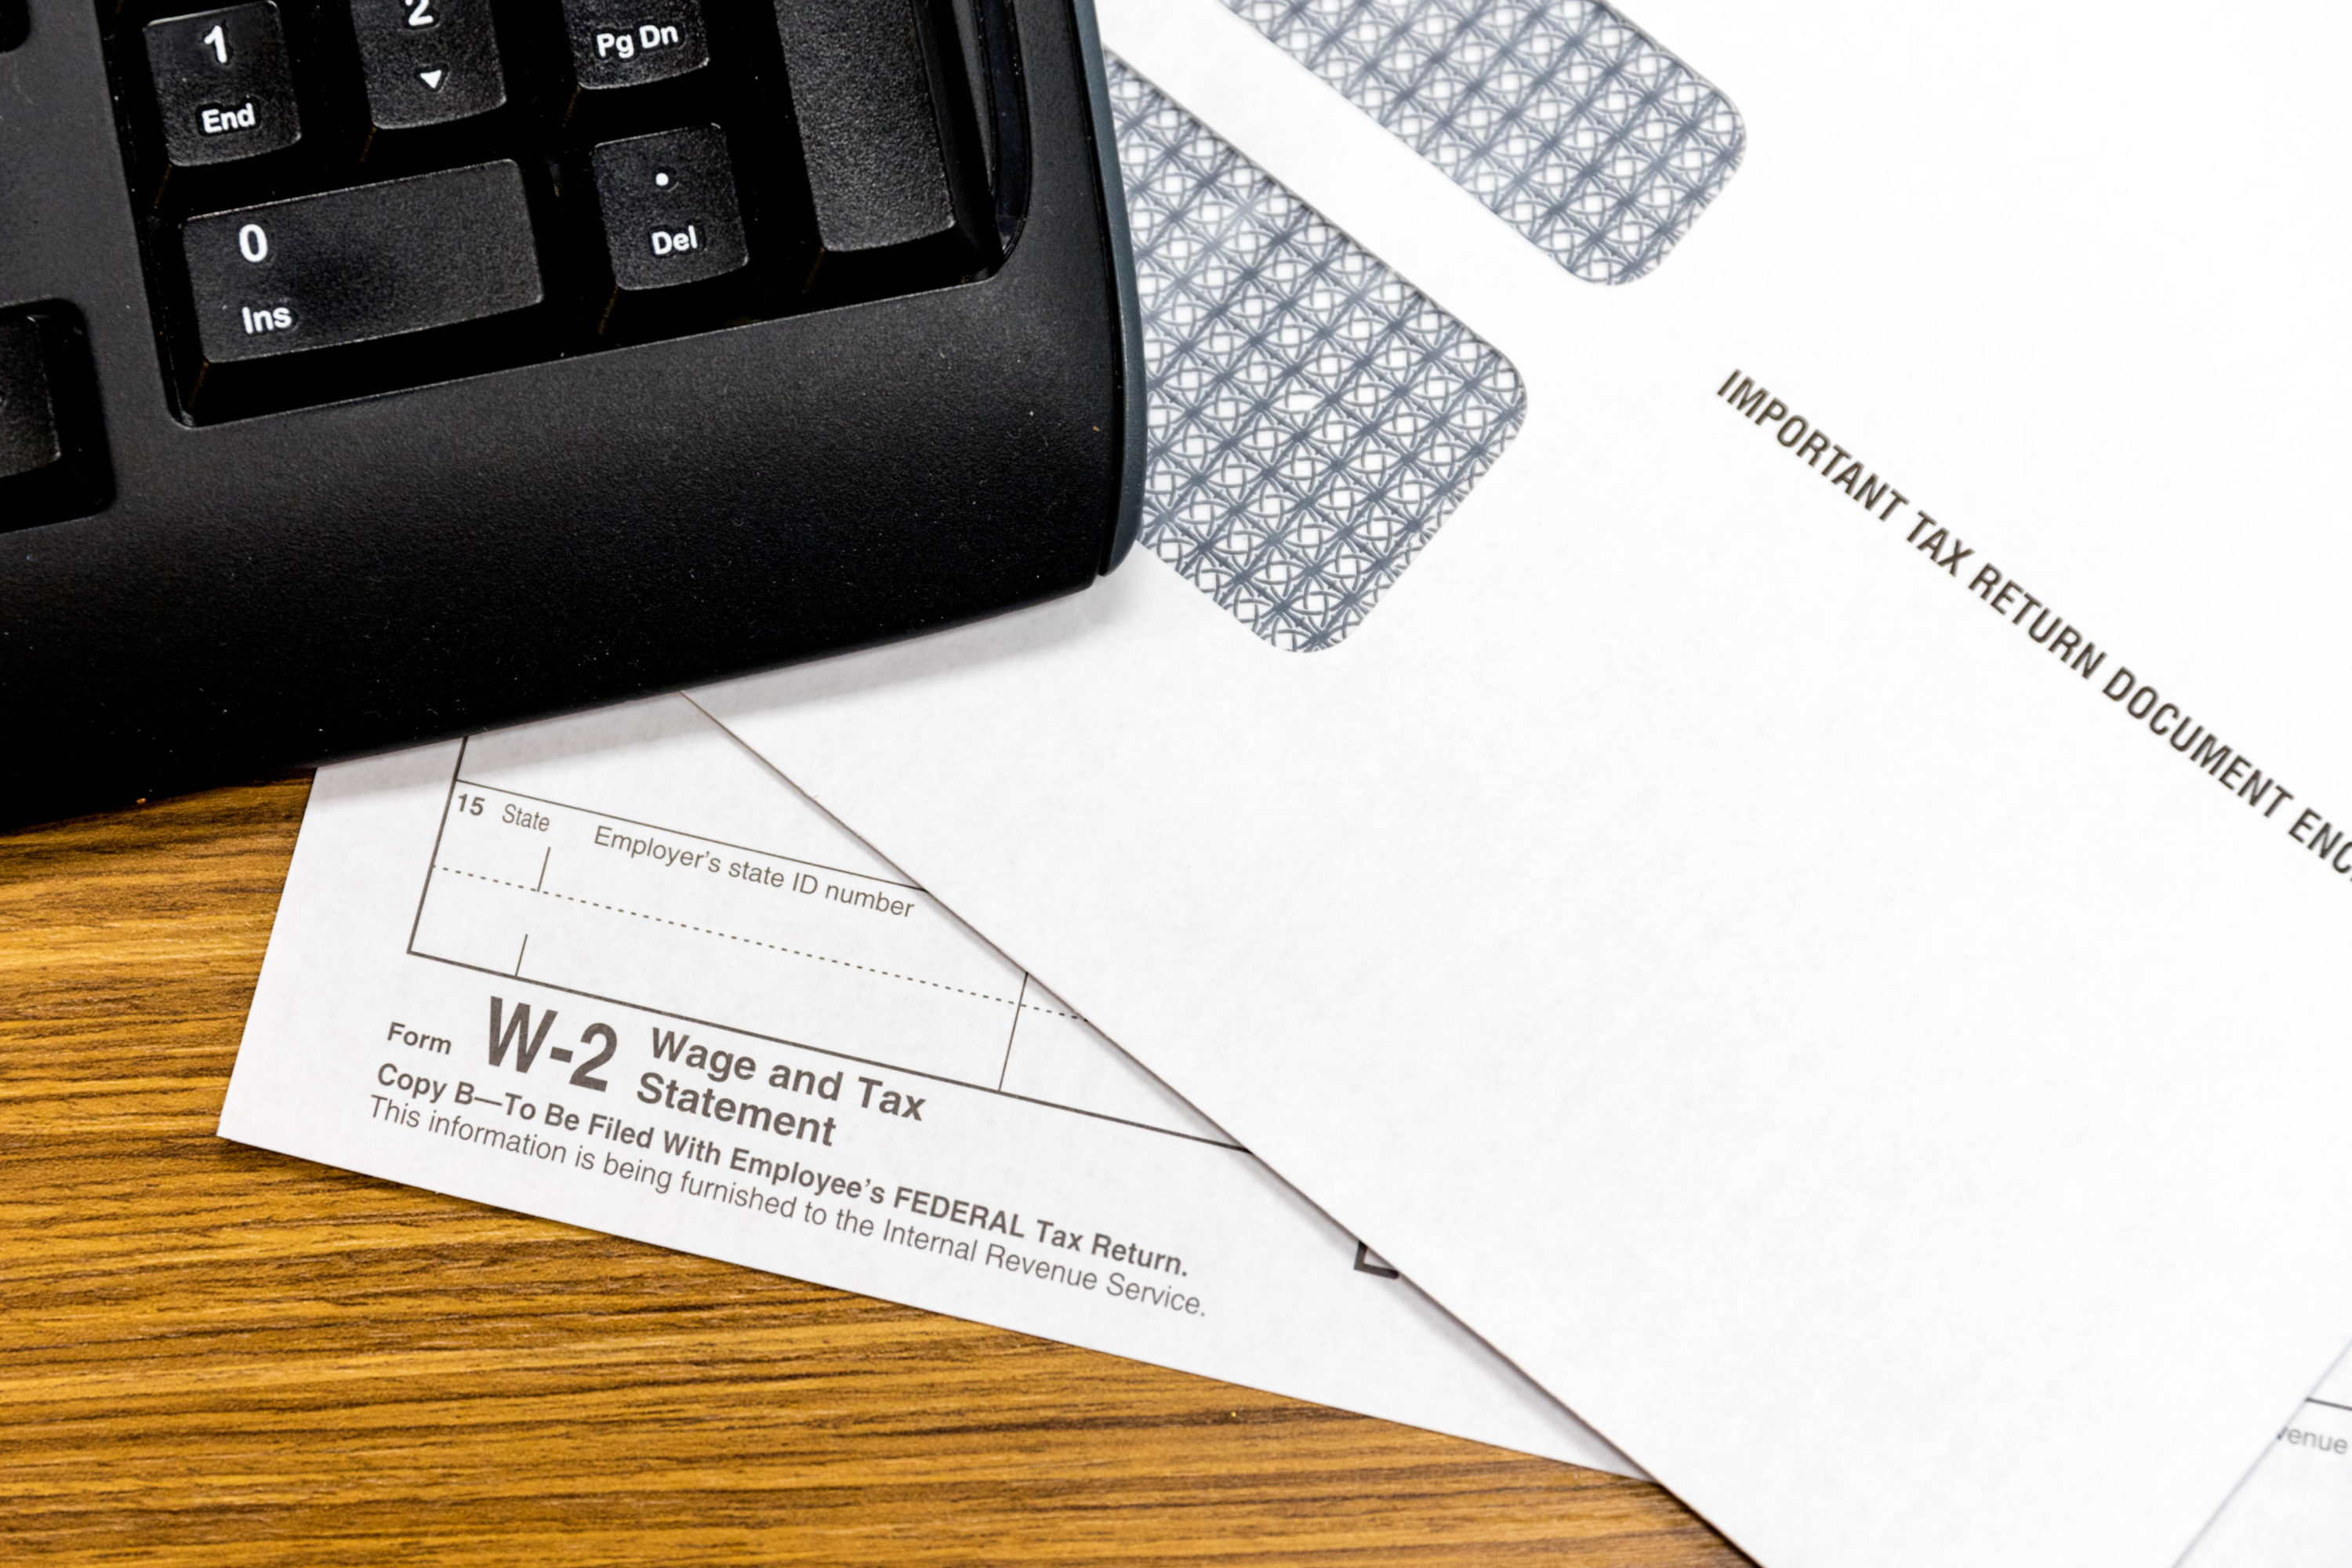 Form W-2 reporting of COVID-19-related sick leave and family leave